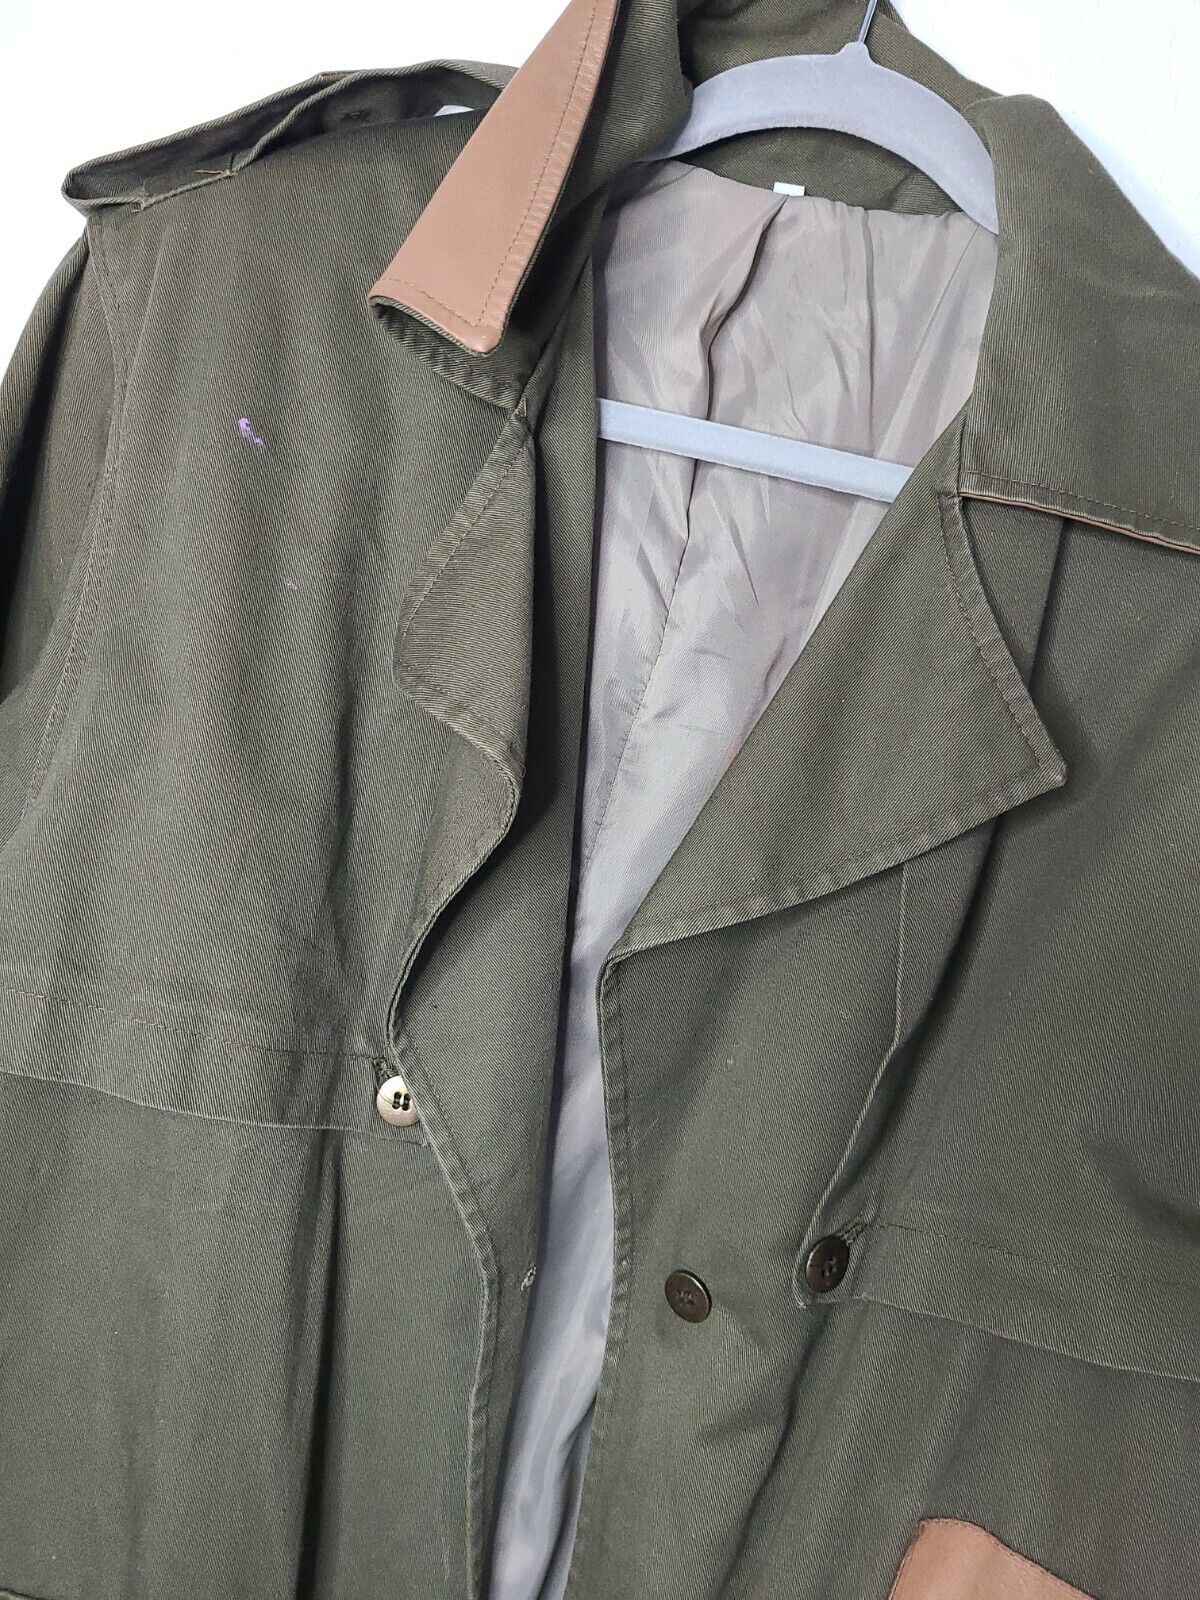 Classic Military Style Trench Coat, Olive Army Gr… - image 3